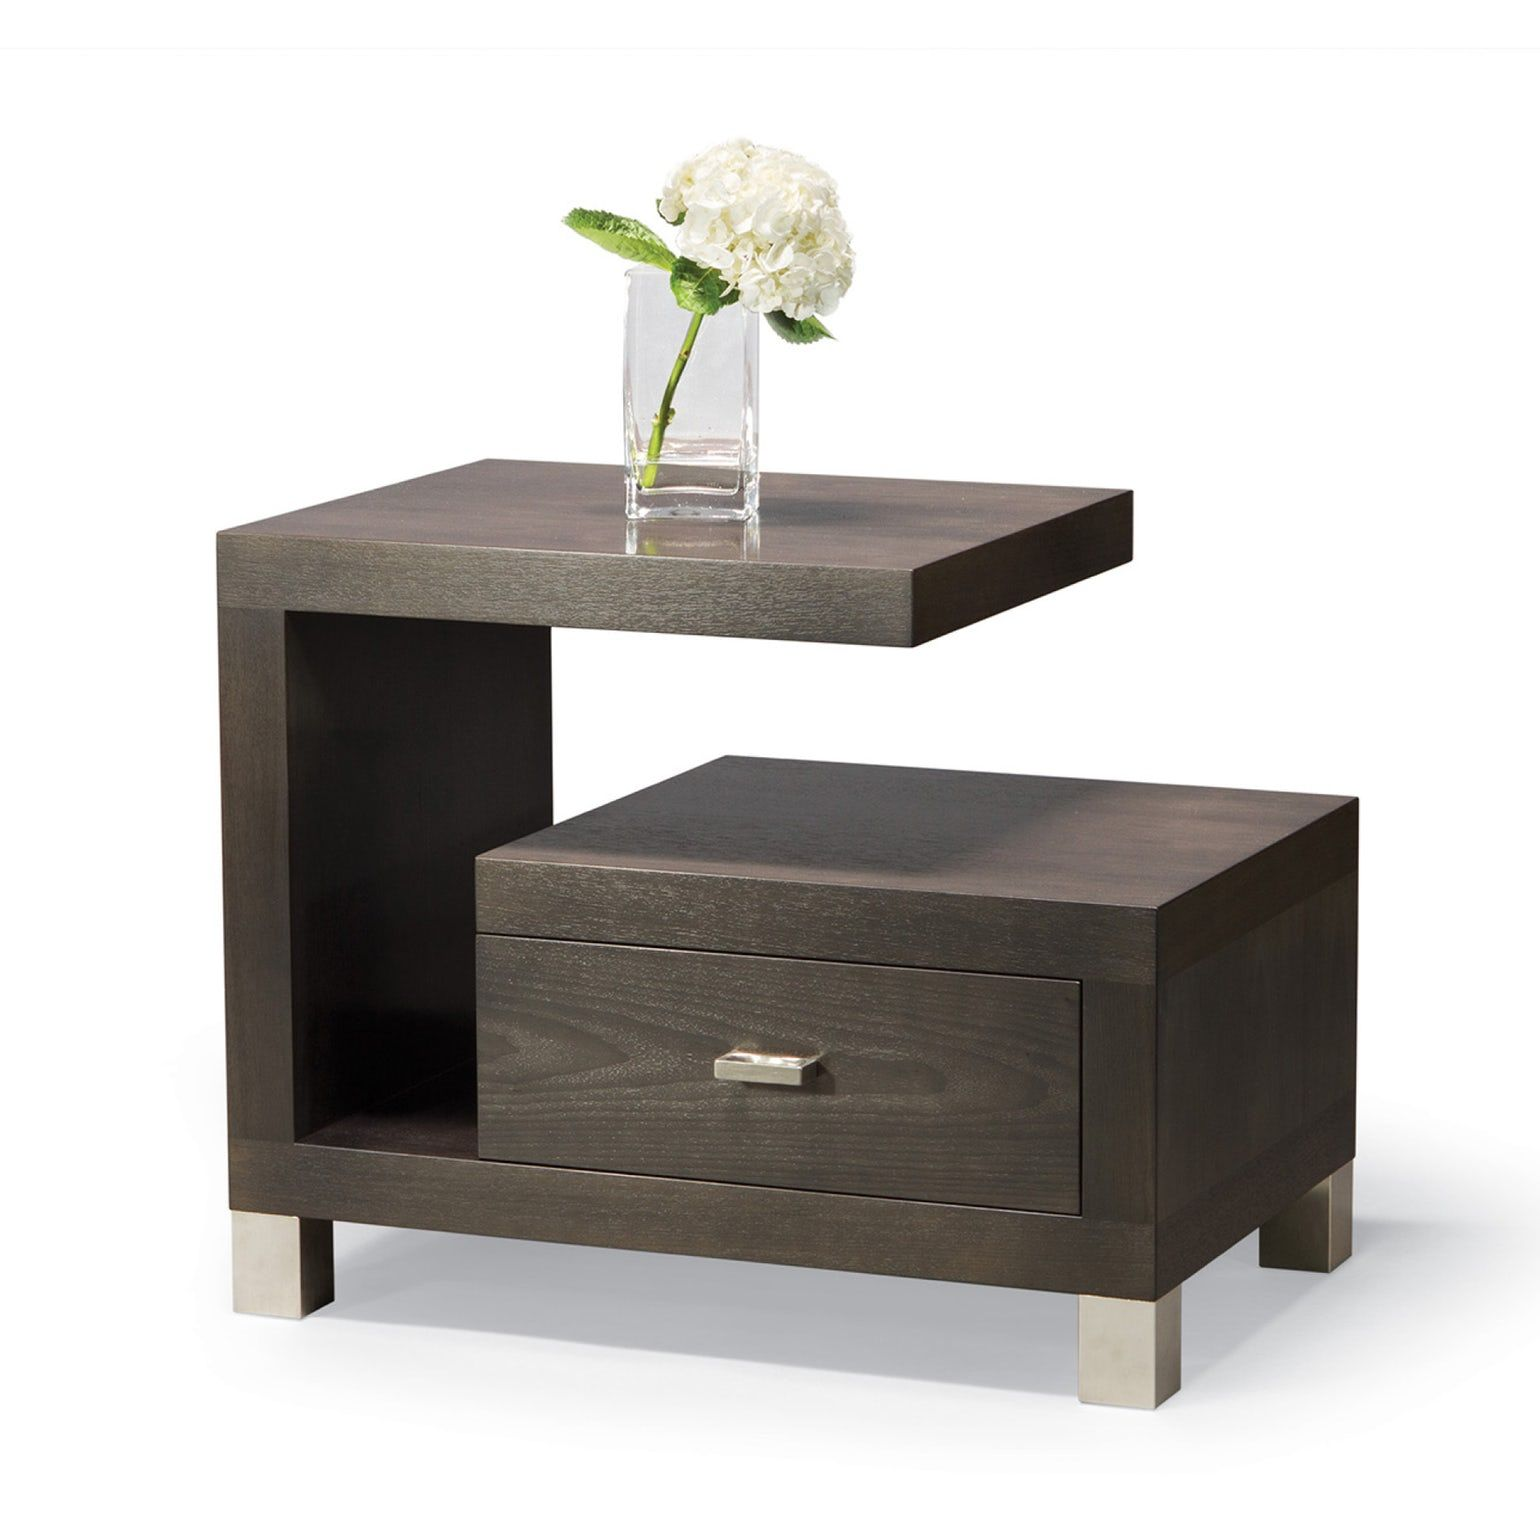 Best Cantilever Night Stand Contemporary Midcentury Modern 640 x 480